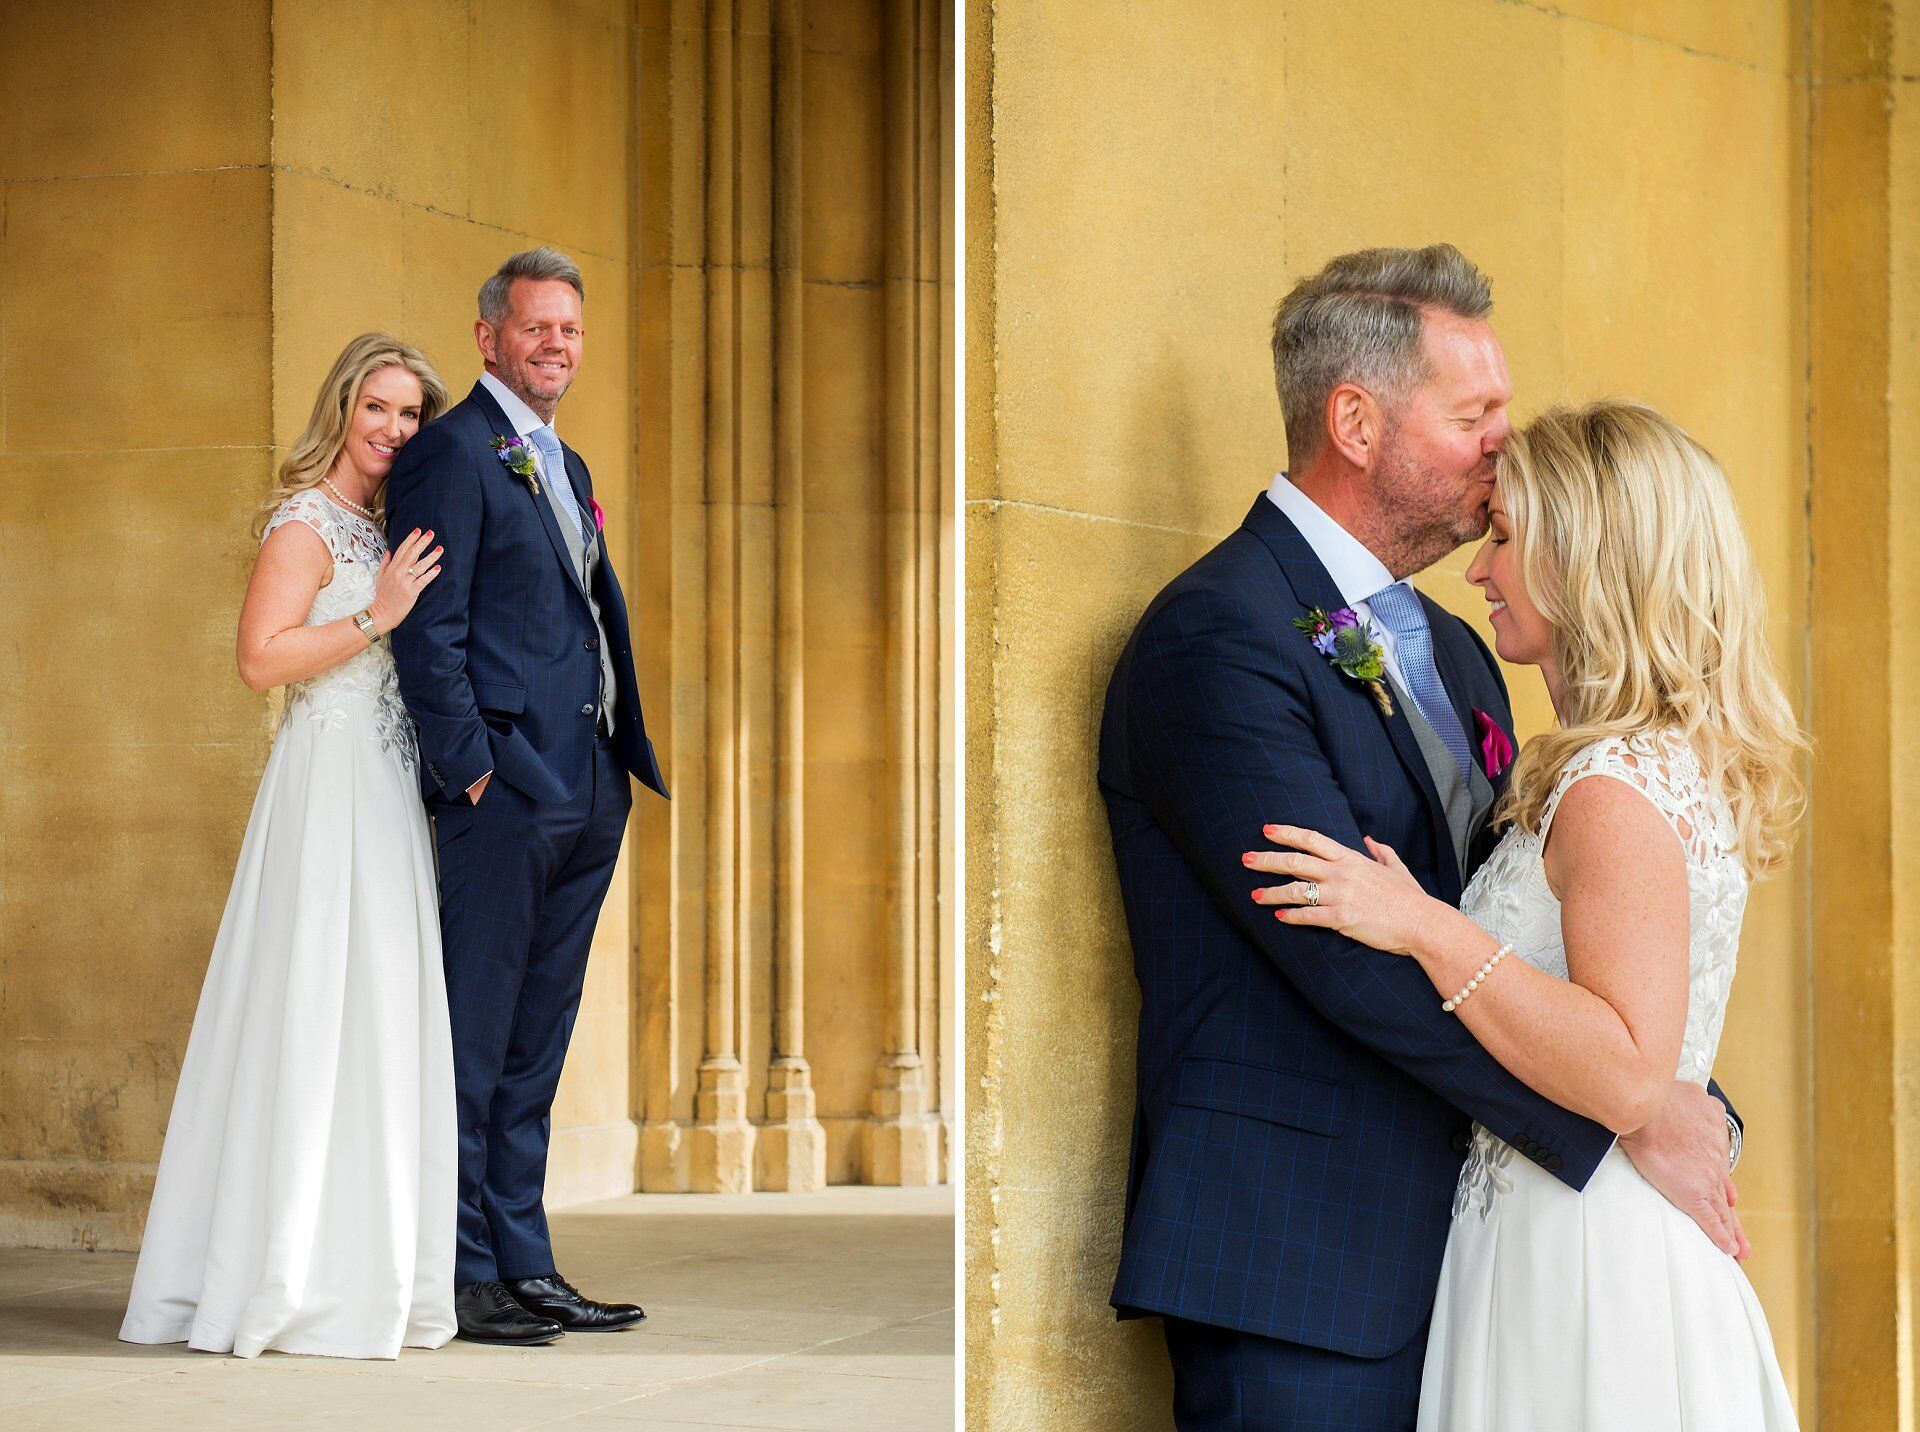 stunning bride and groom couple photographs taken by register office specialist emma duggan for relaxed and natural chelsea old town hall portraits